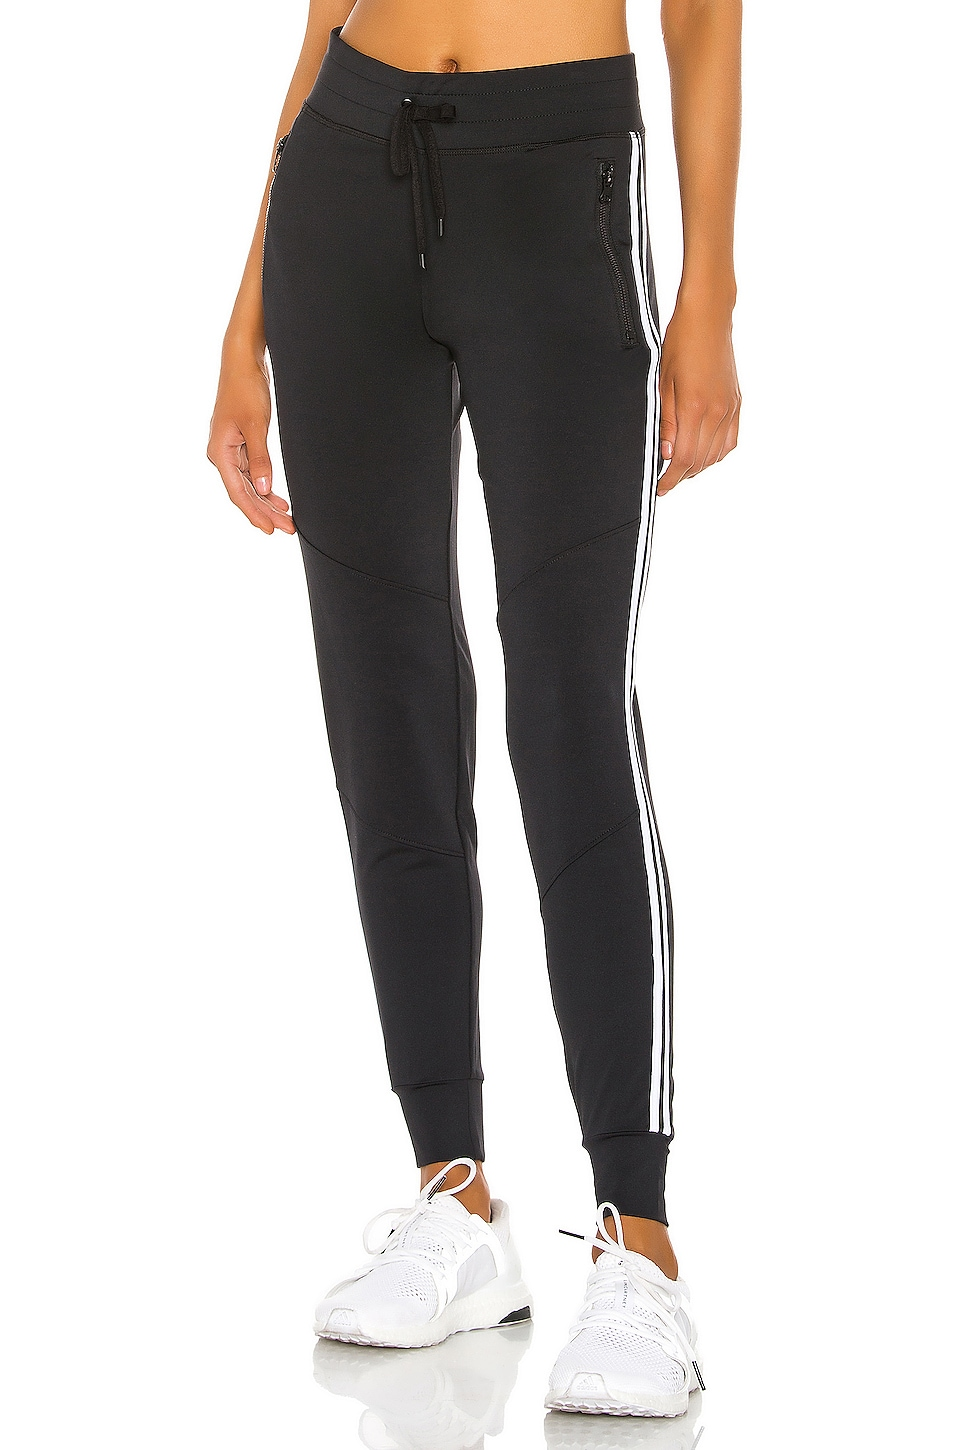 lukka lux Singled Out Jogger in Black Onyx